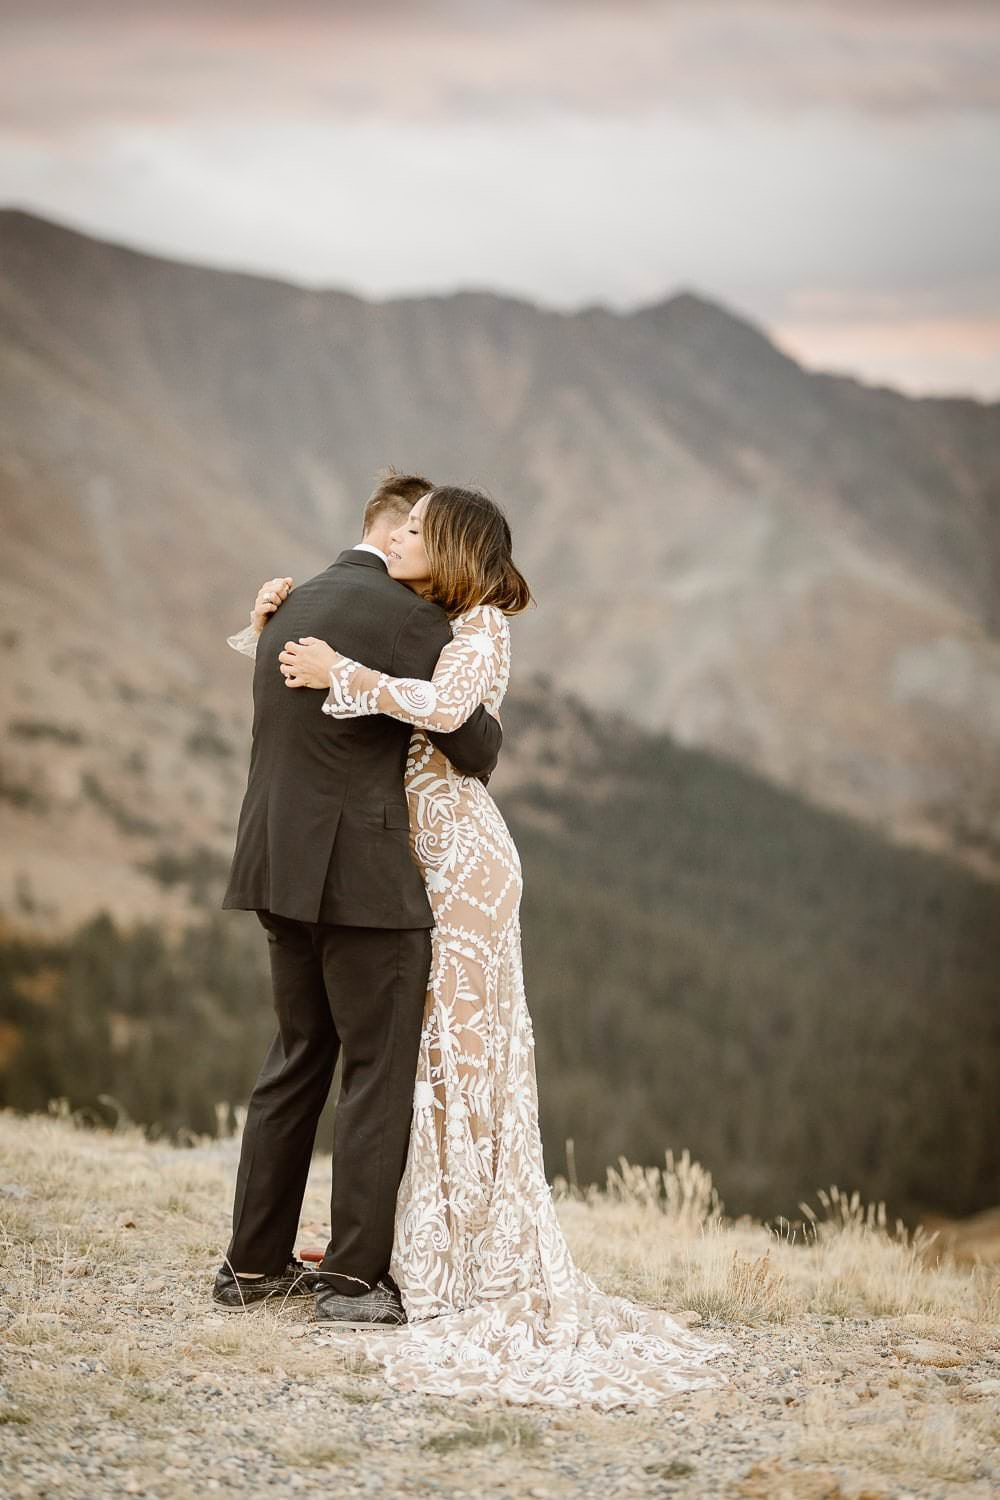 JOHN'S +JANEENA ADVENTUROUS BRECKENRIDGE ELOPEMENT | SUNRISE FIRST LOOK AT LOVELAND PASS | SUNRISE WEDDING CEREMONY AT LOVELAND PASS | DESTINATION ELOPEMENT PHOTOGRAPHERCOLORADO ADVENTURE PHOTOGRAPHY|COLORADO ELOPEMENT PHOTOGRAPHER|DESTINATION ADVENTURE ELOPEMENTS + INTIMATE WEDDINGS FOR MADLY IN LOVE SOULS| ROCKY MOUNTAIN NATIONAL PARK COLORADO ELOPEMENT PHOTOGRAPHER